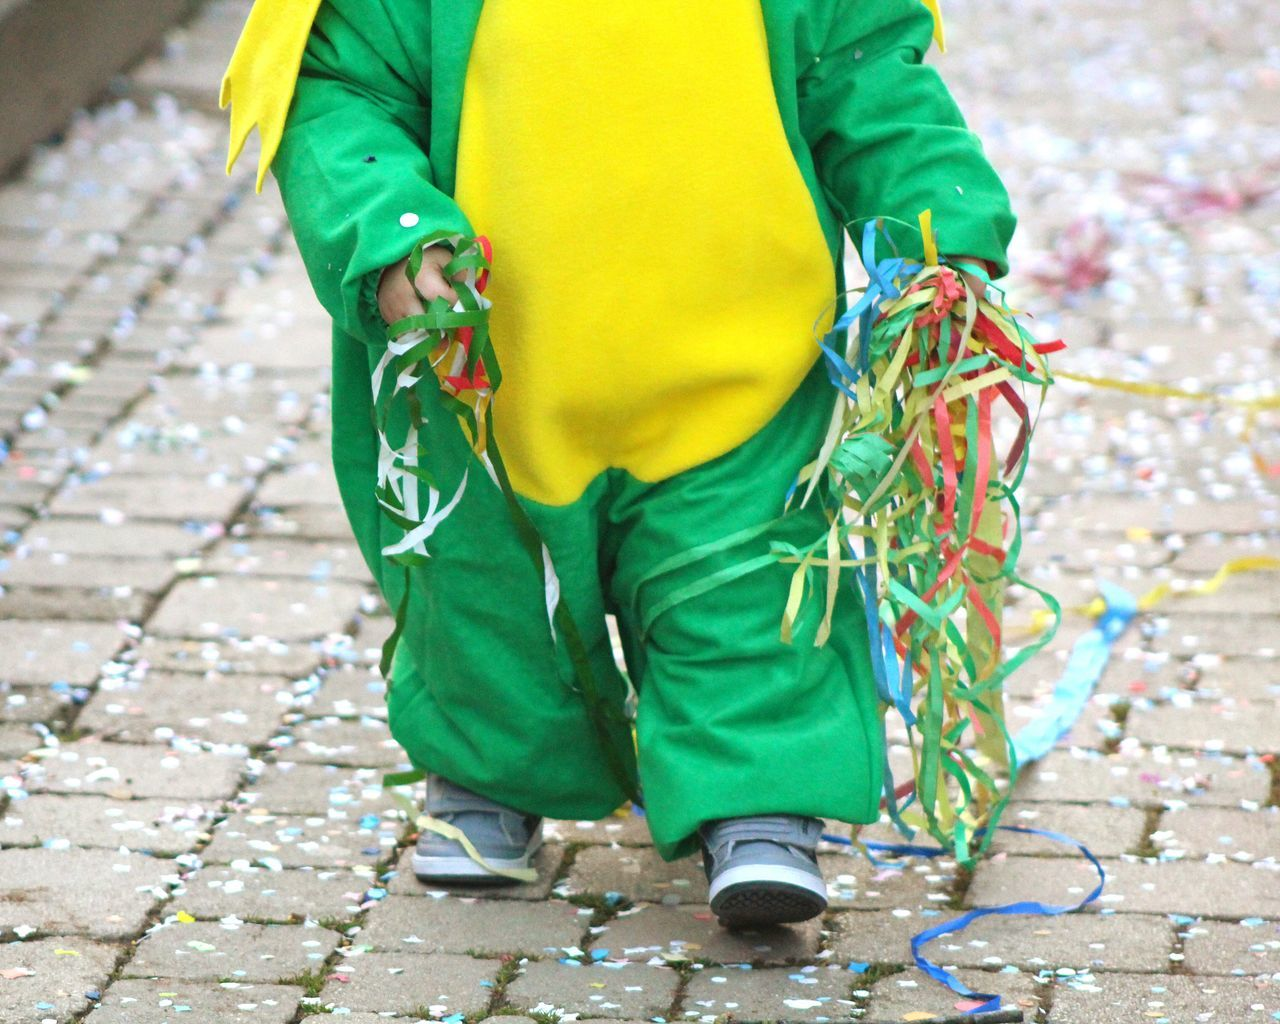 Carnival Crowds And Details Green Color Reflective Clothing Low Section Human Body Part Children Photography Childhood Children's Portraits Carnival Spirit Carnival Time Carnival Parade Day Outdoors Multi Colored Carnival Mask Carnival Party Carnival - Celebration Event Children Playing